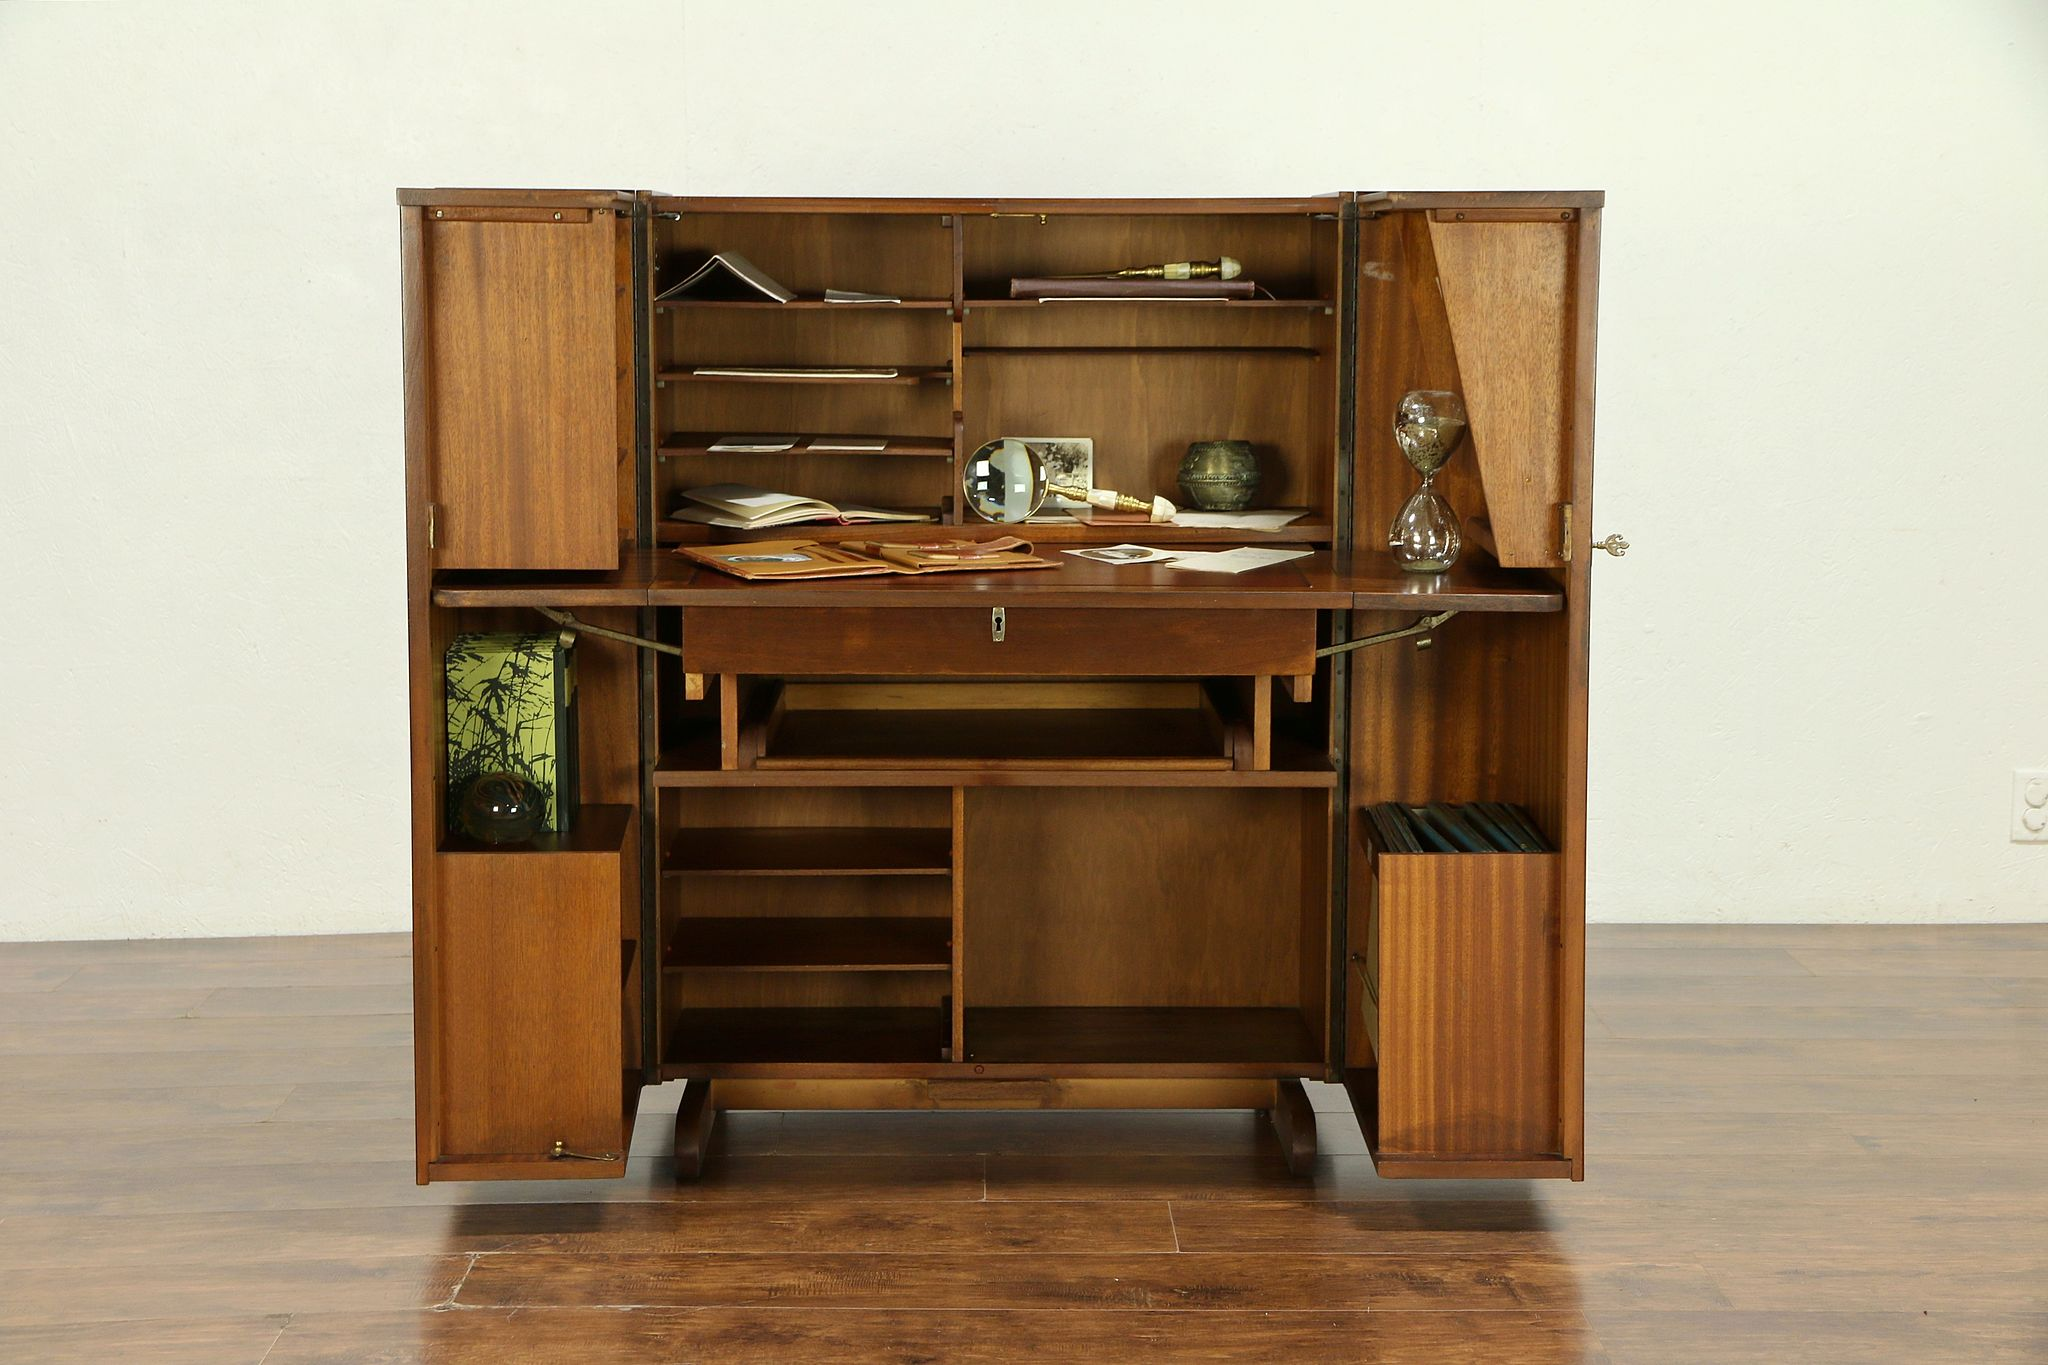 24a09c3c176 SOLD - Midcentury Modern 1960 Vintage English Rosewood Cabinet Desk Home  Office  30301 - Harp Gallery